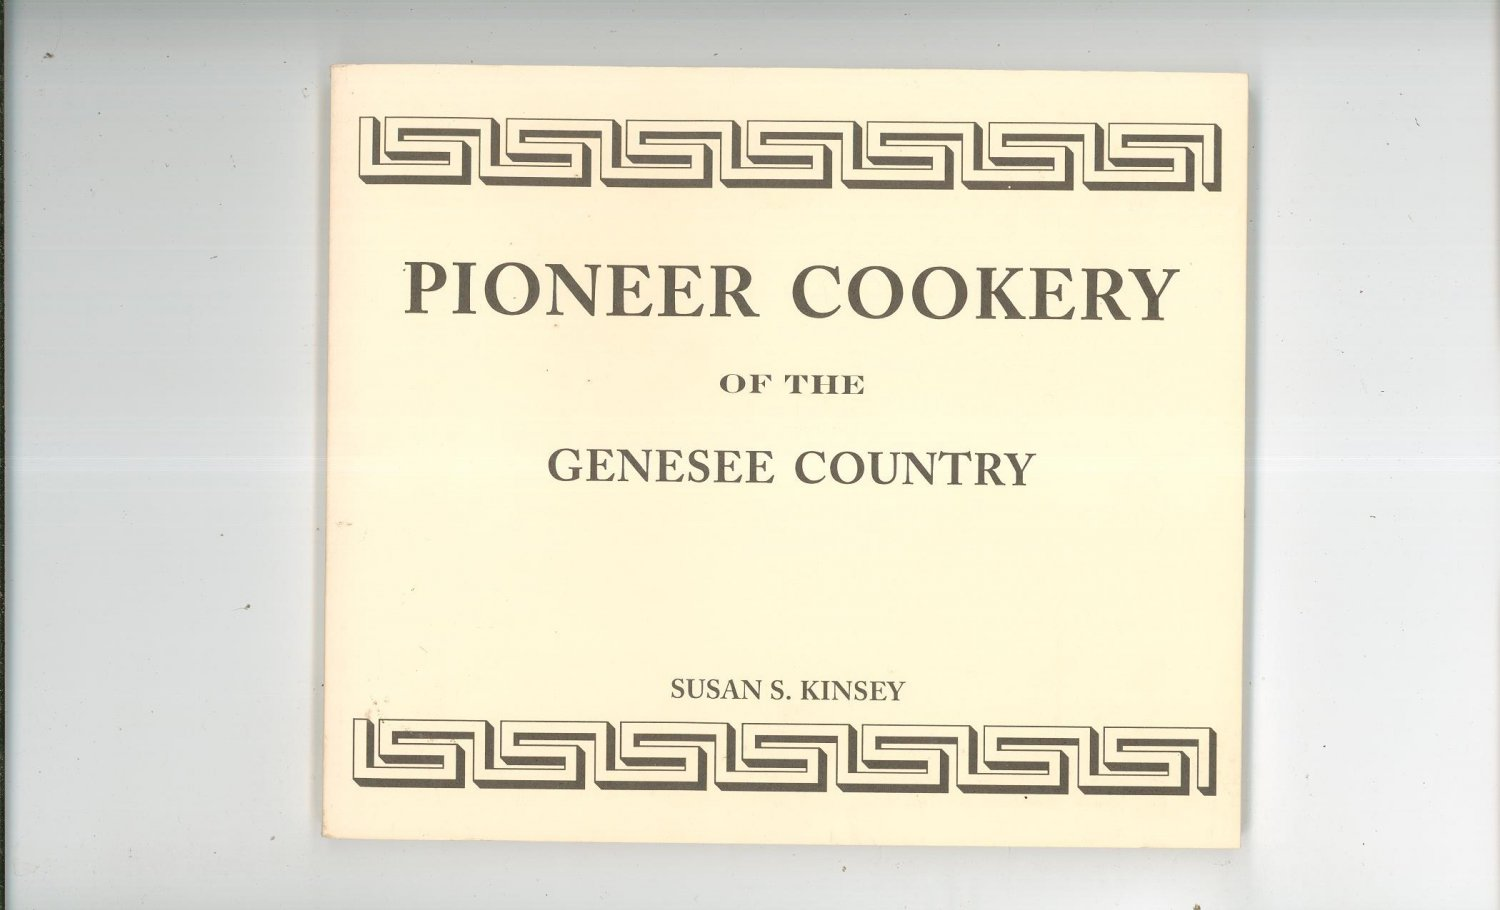 Pioneer Cookery Of The Genesee Country Cookbook by Susan Kinsey